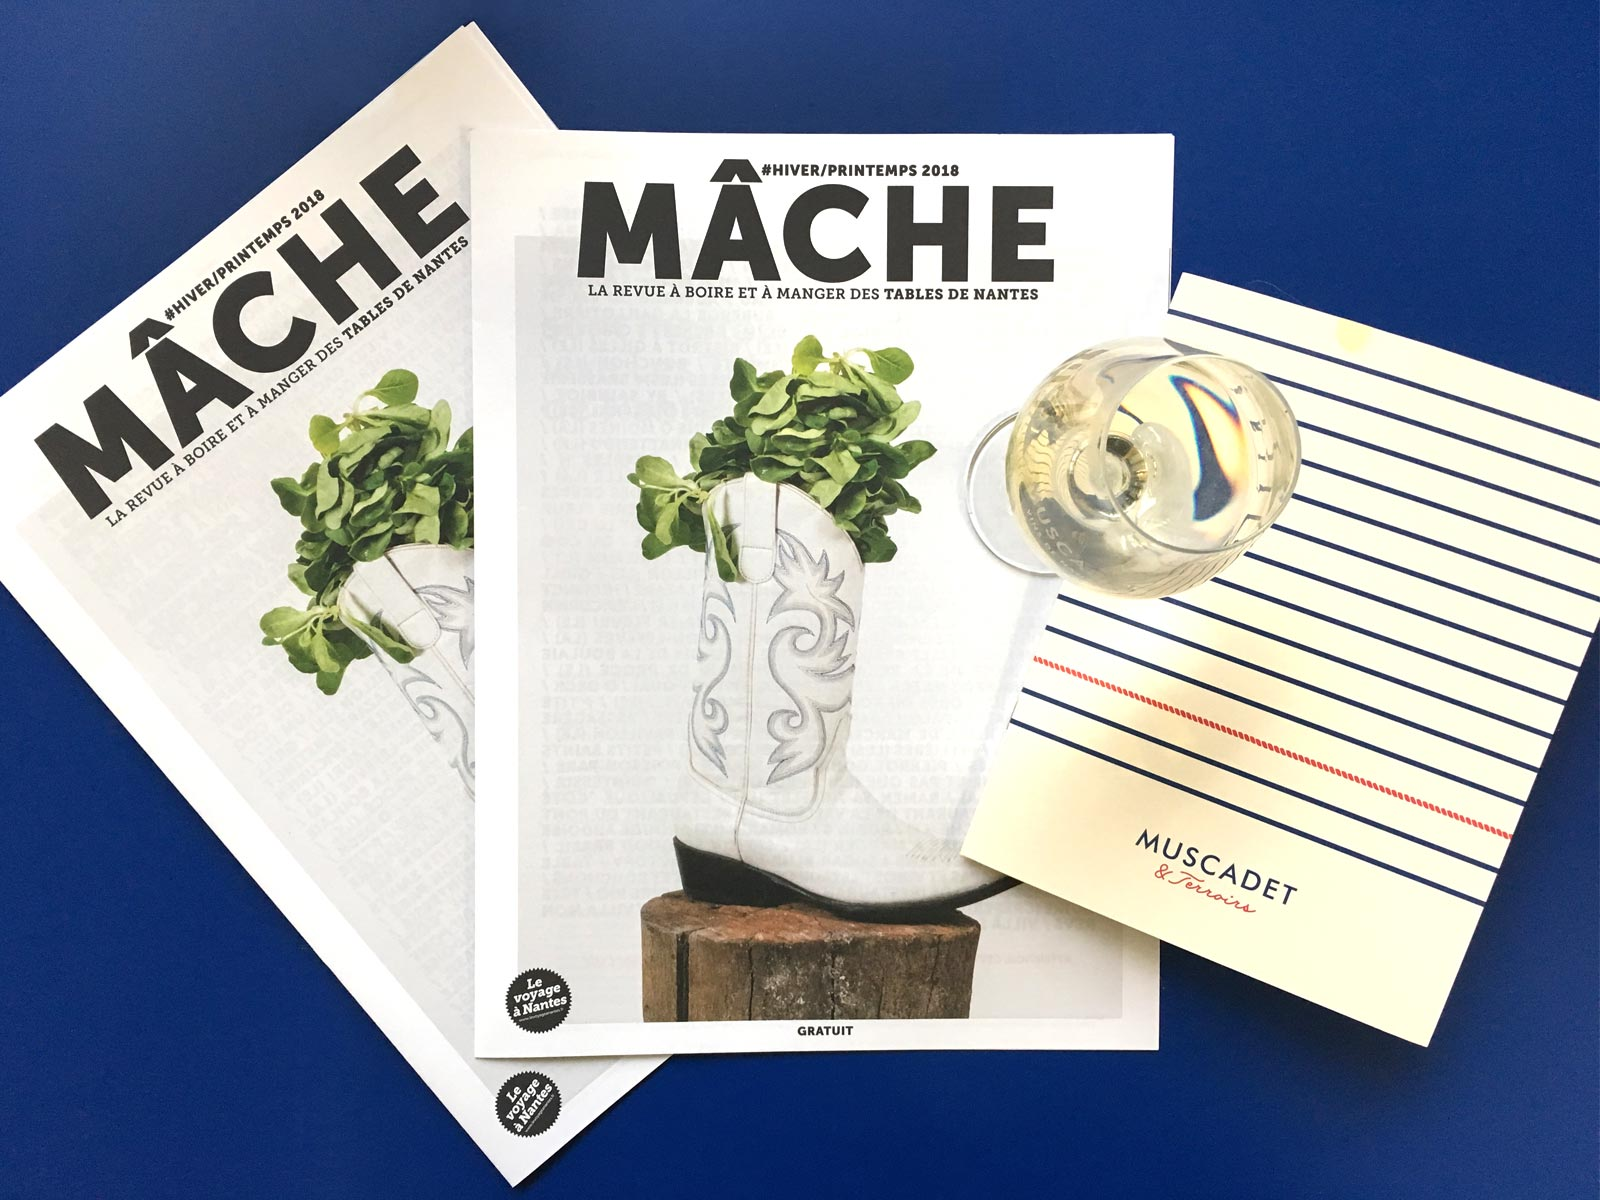 Mâche, le magazine du guide des Tables de Nantes